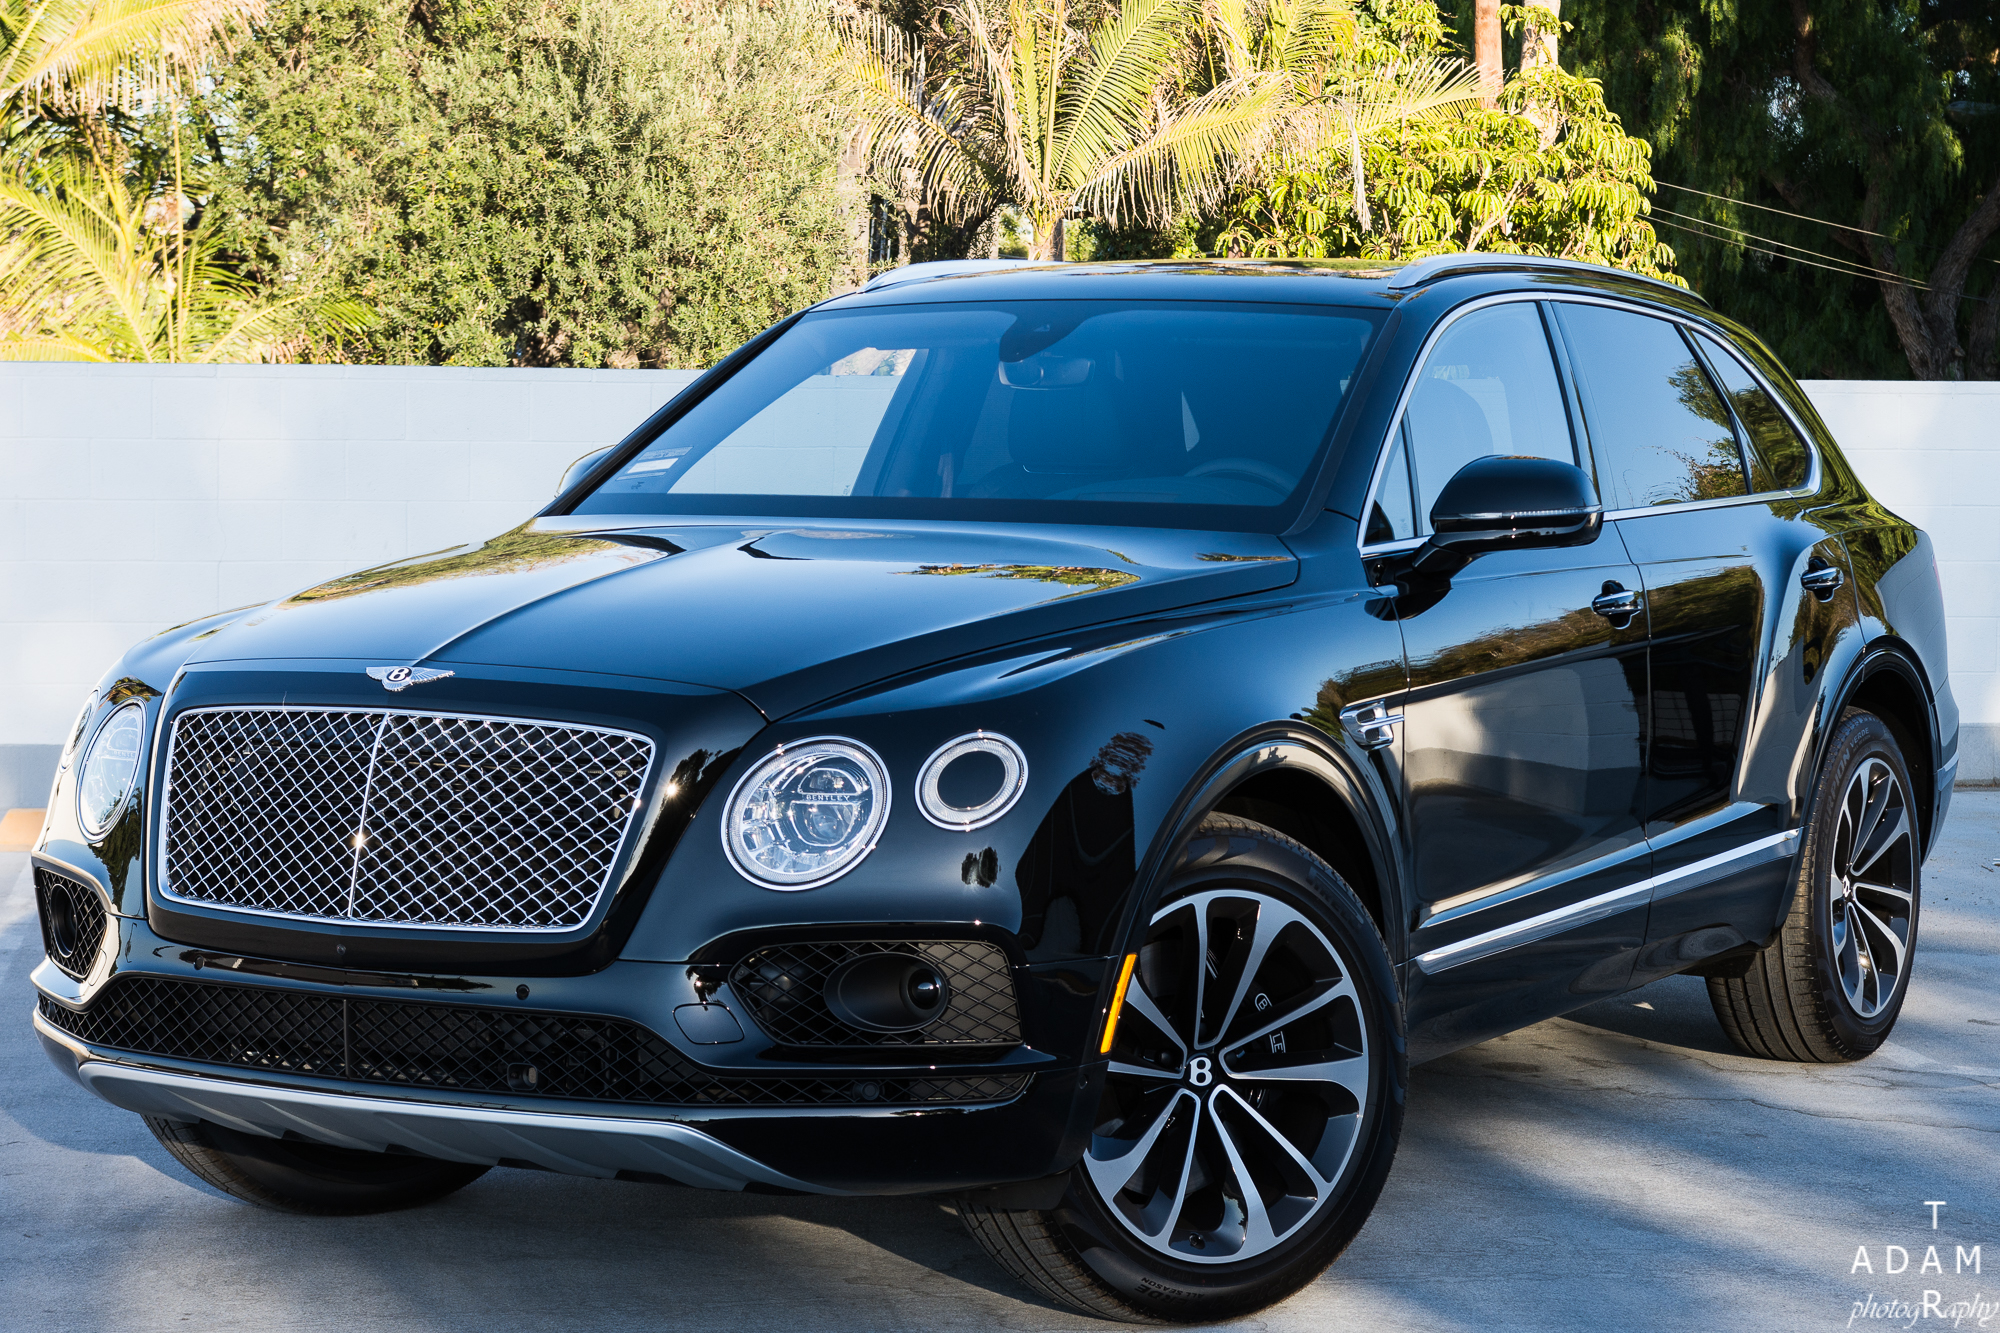 flying rental hire aaa rent spur luxury car bentley for sport new